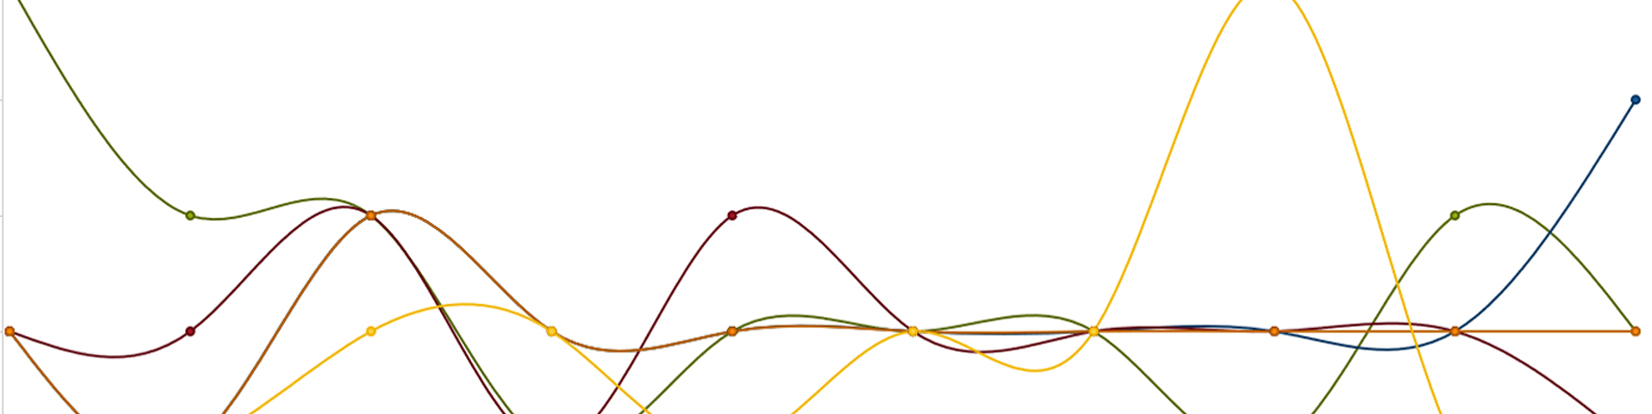 image of a graph made using voyant tools